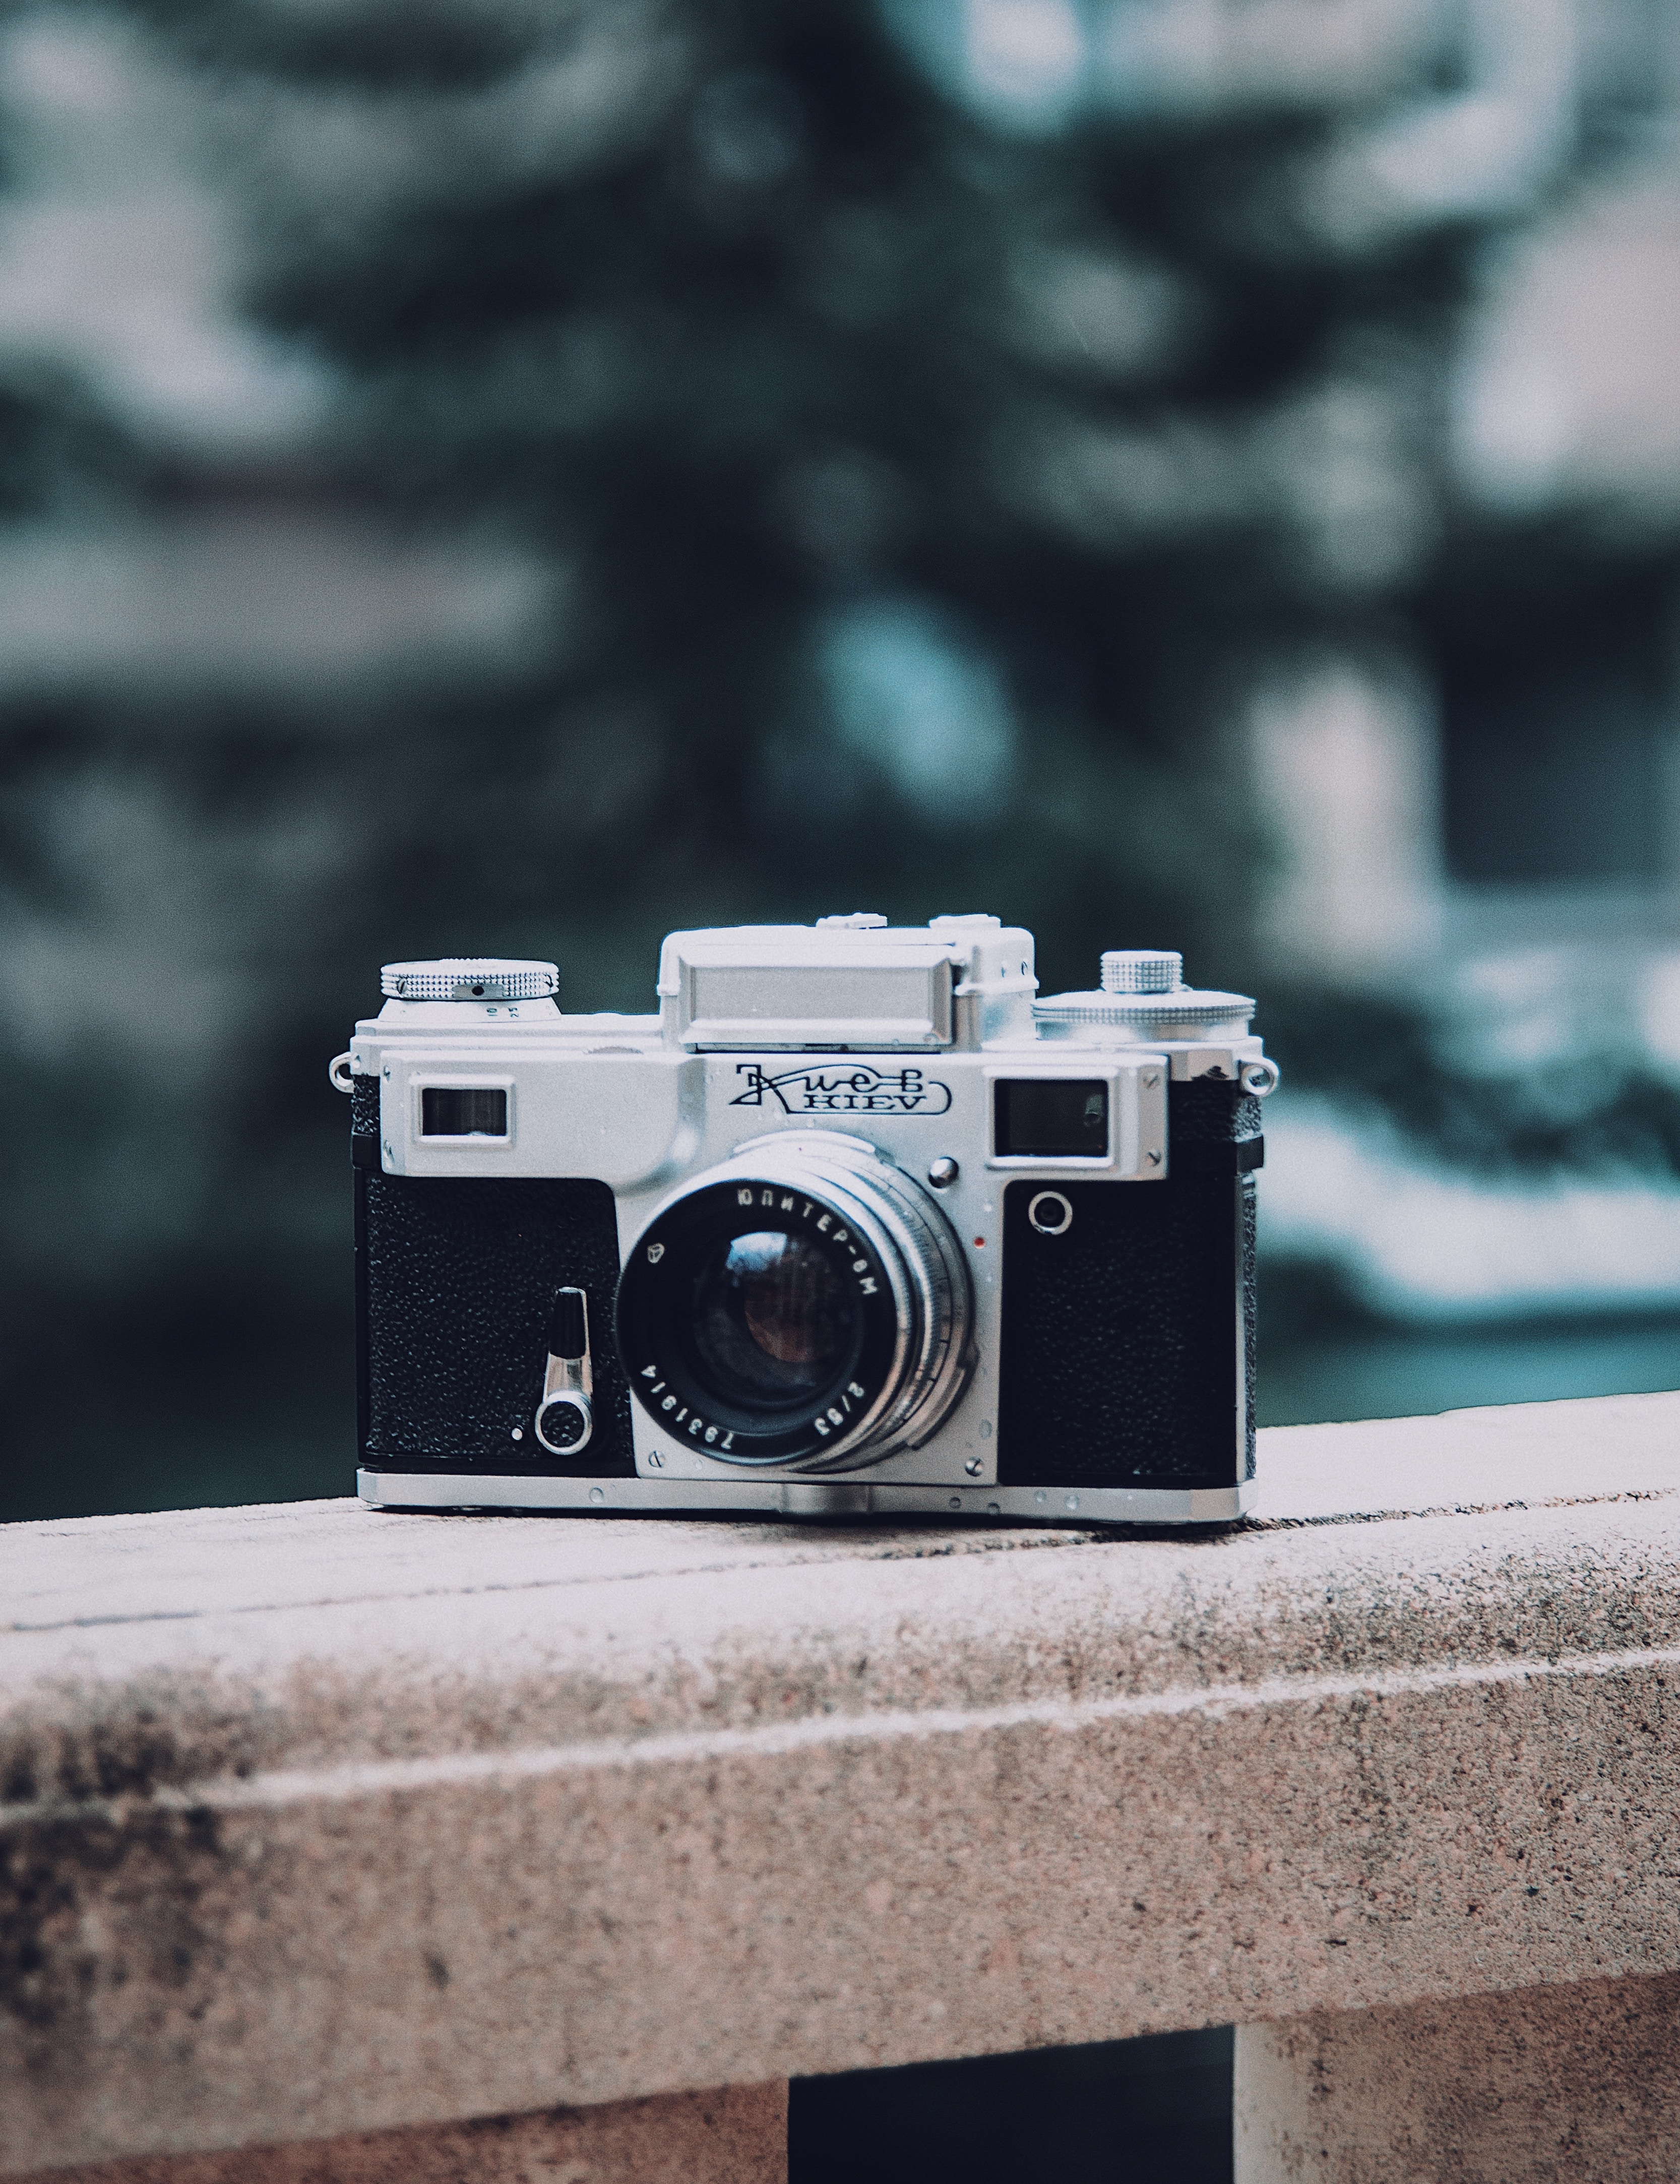 139215 download wallpaper Technologies, Technology, Camera, Retro, Vintage, Lens, Photo screensavers and pictures for free